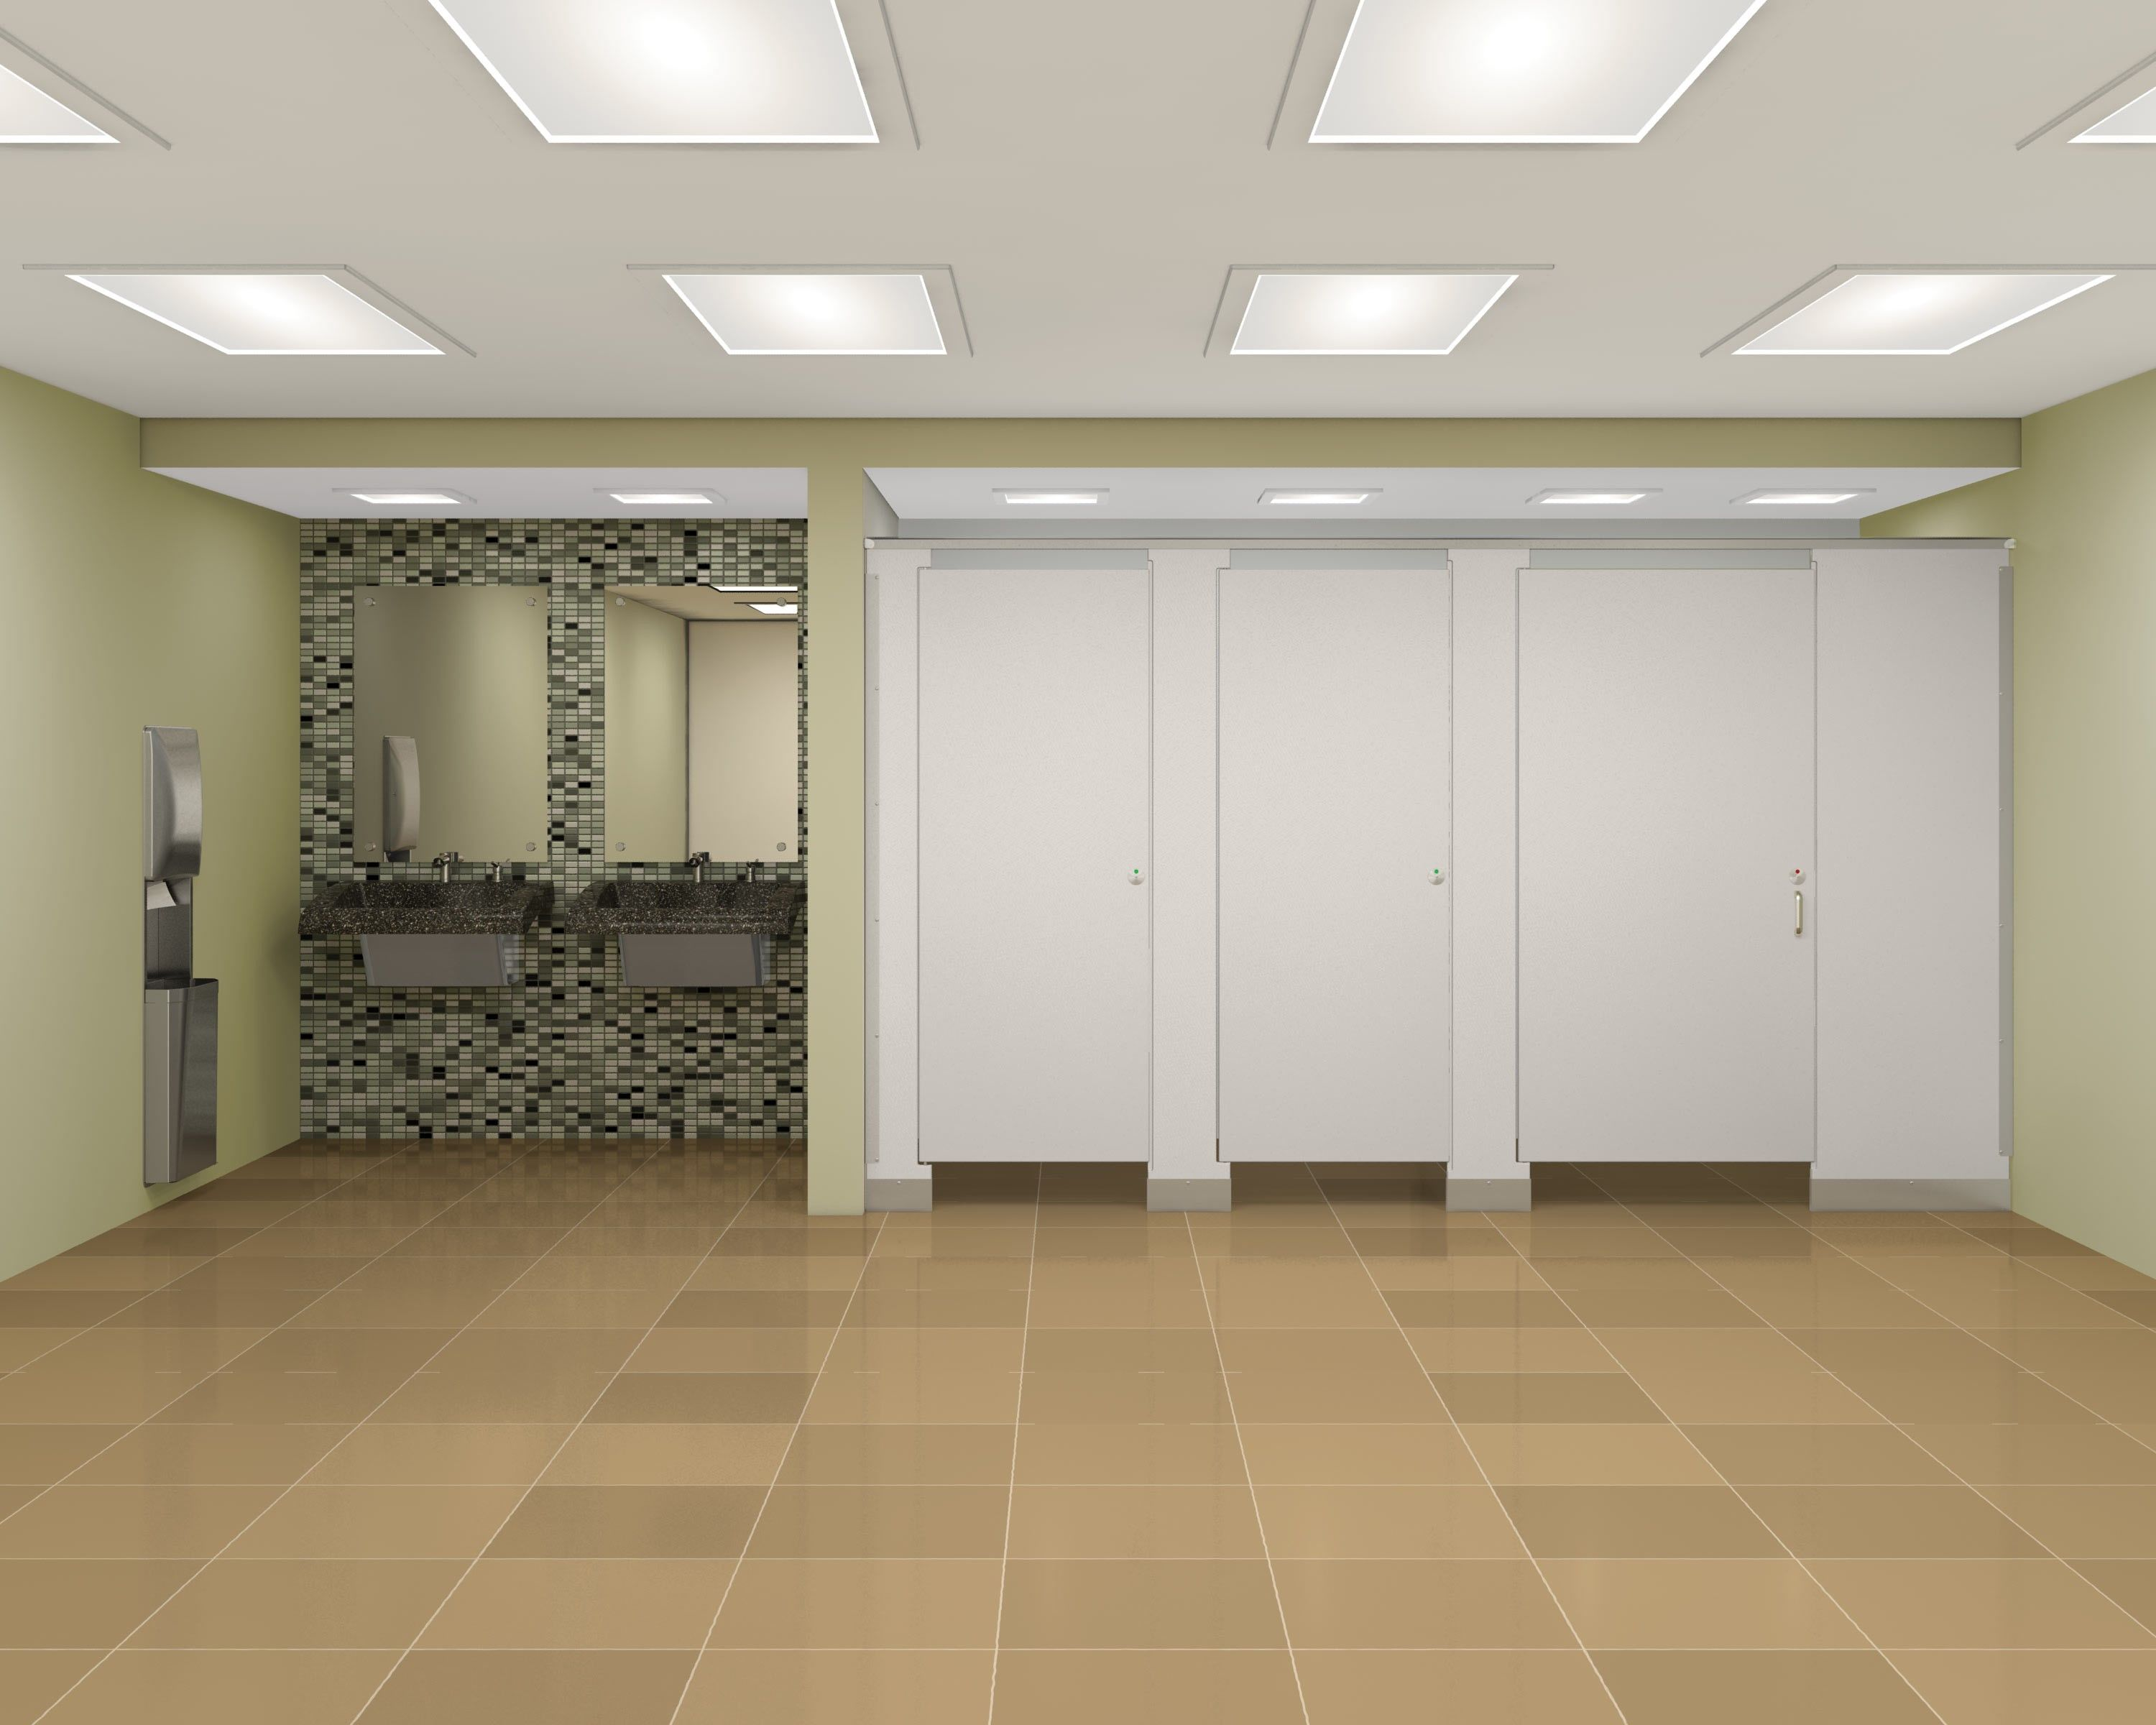 Bradley Bathroom Partitions Property bradmar partitions improve public restrooms and create a sanctuary